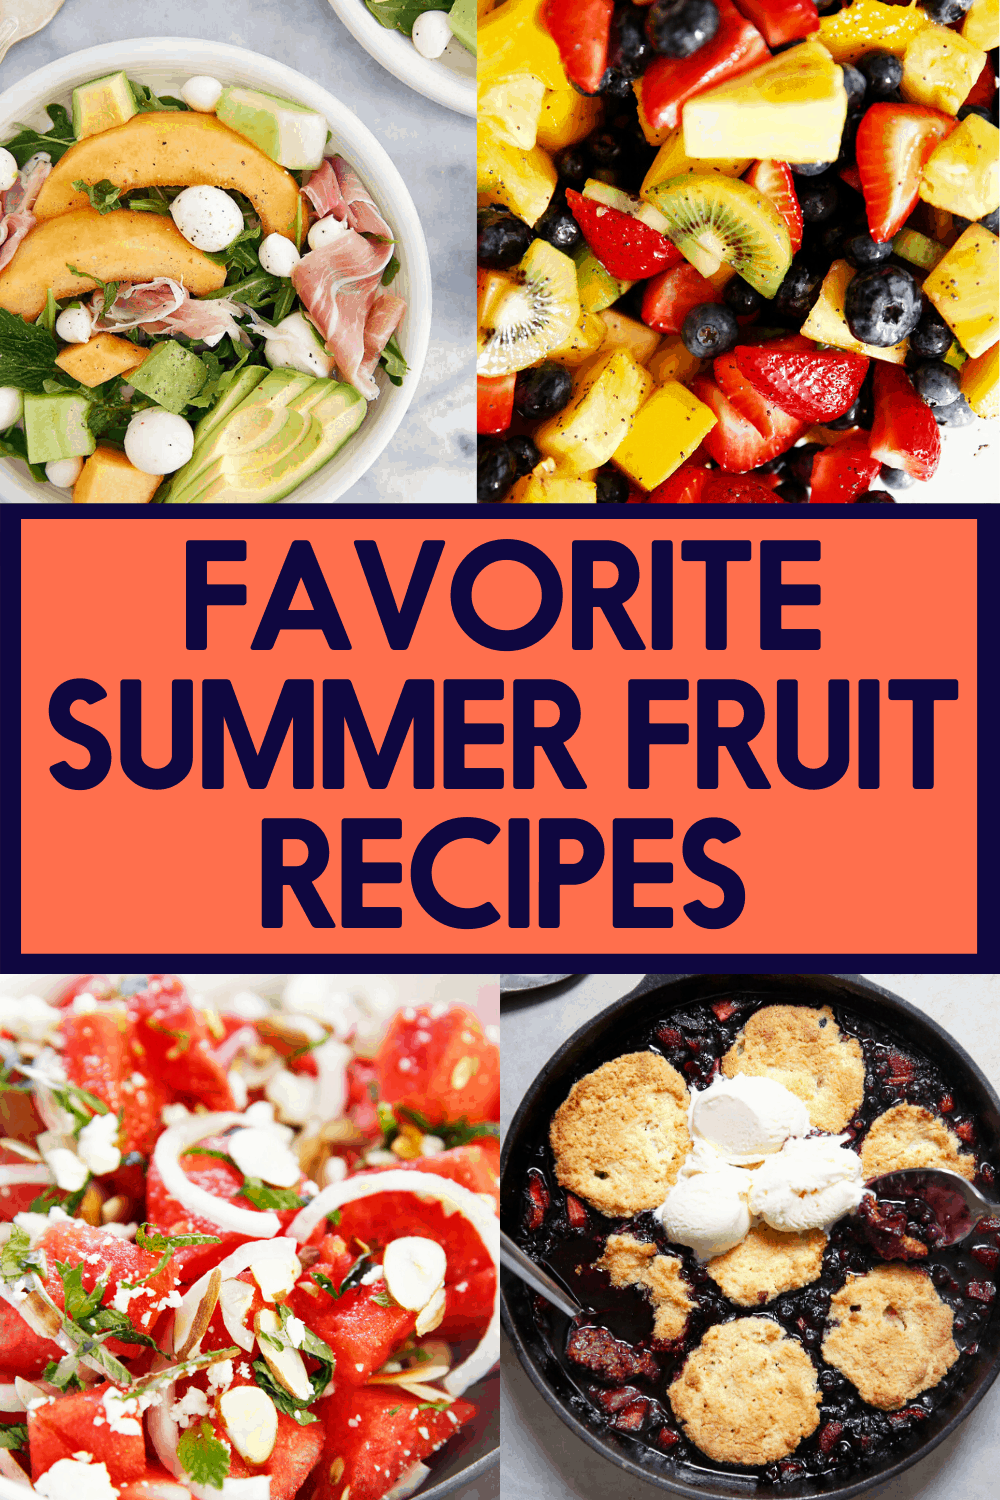 Favorite Summer Fruit Recipes